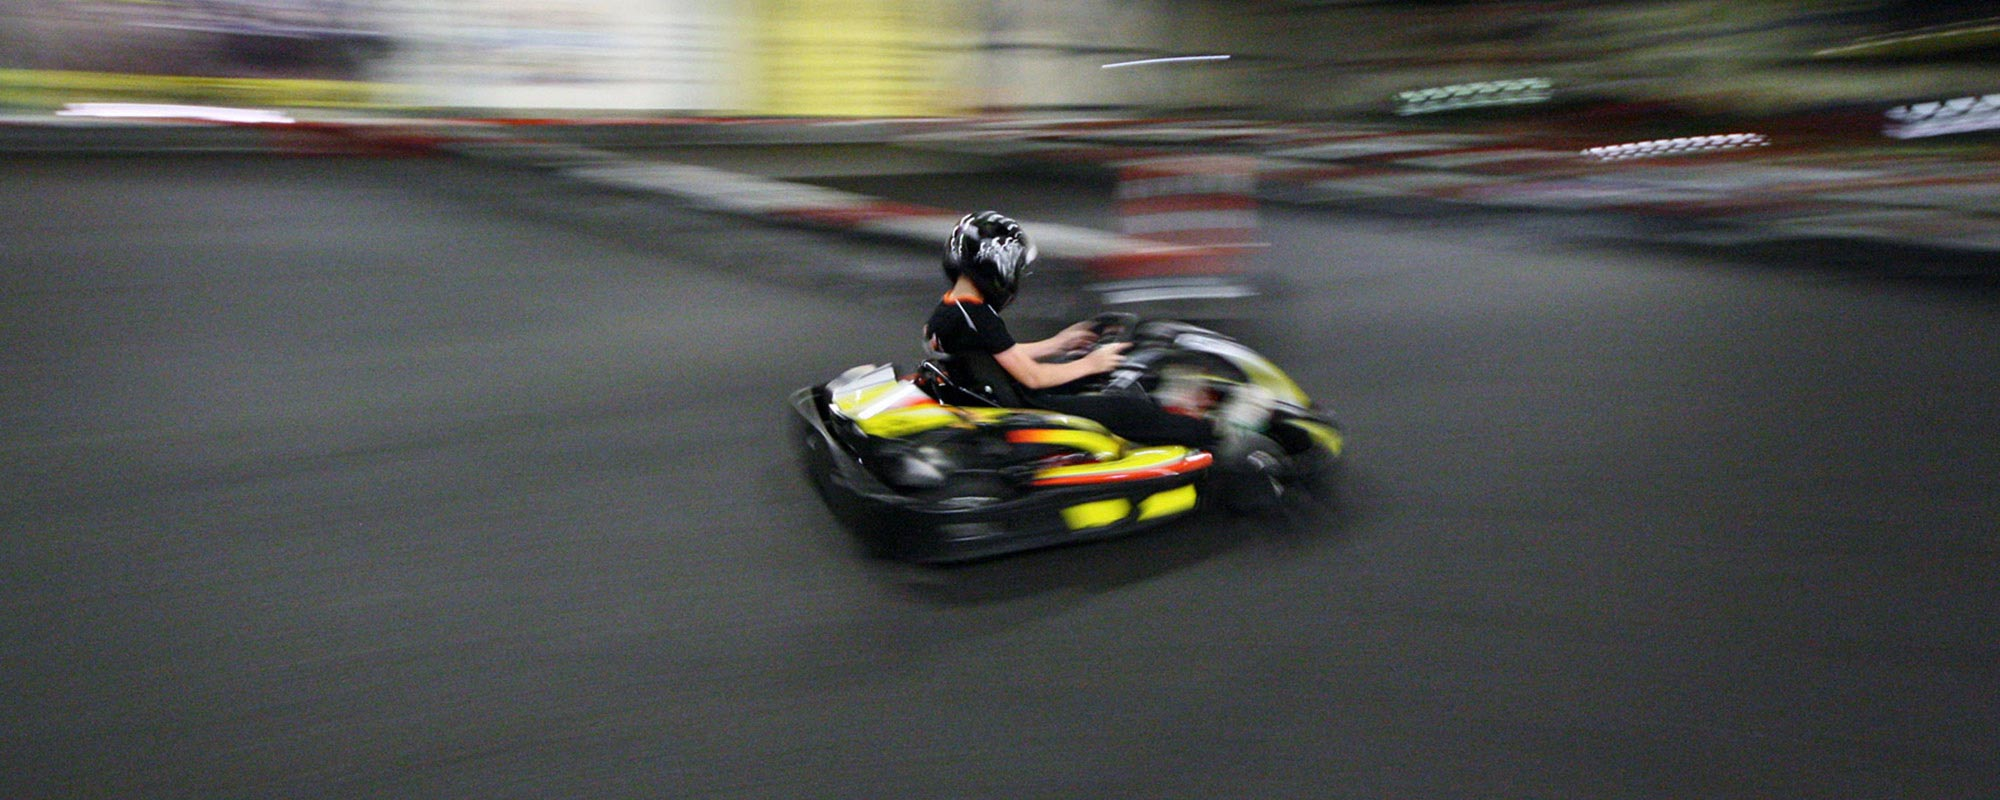 ebafkc-juniorkarting-2000x800-20